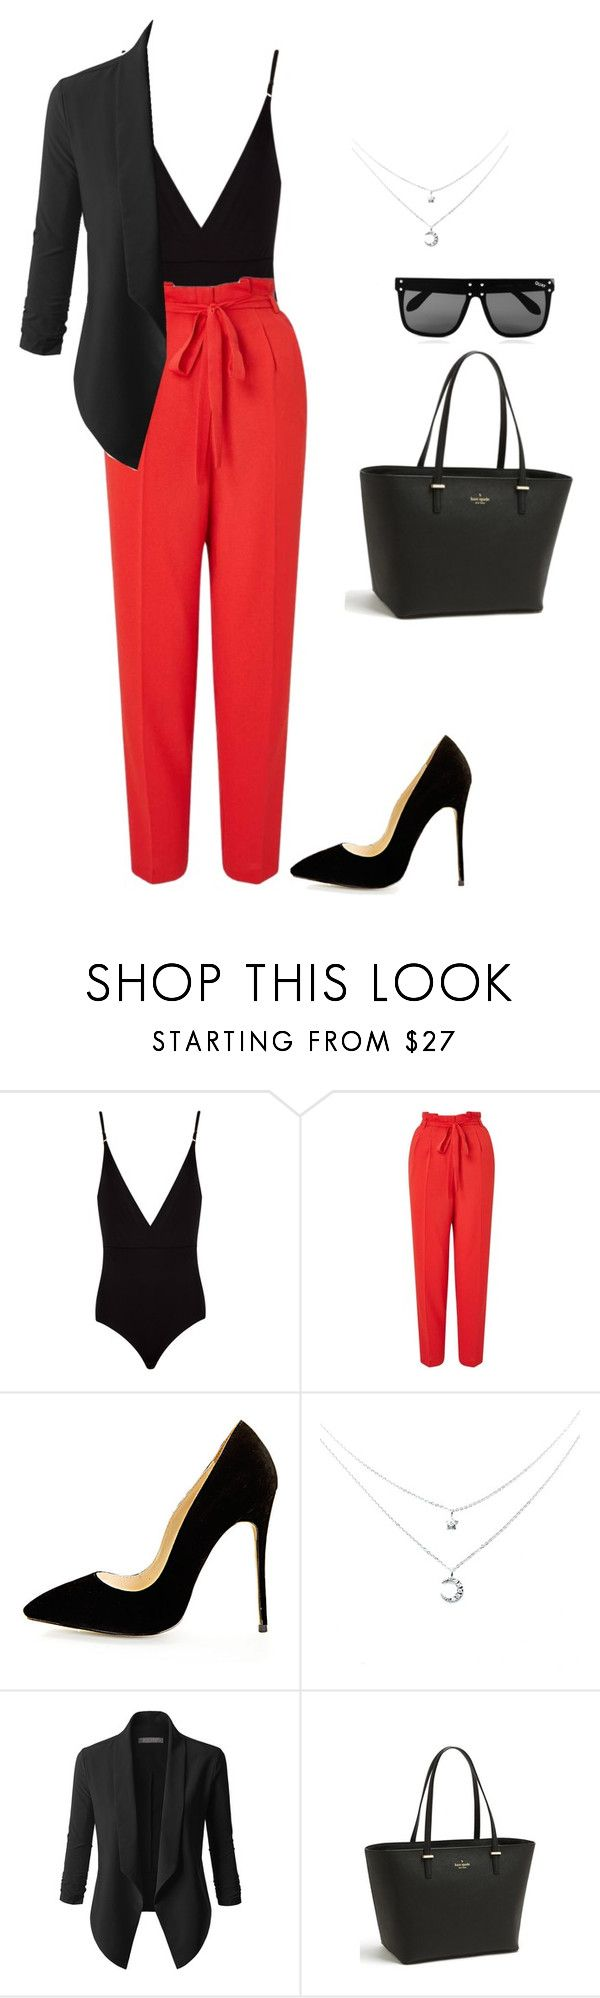 """Untitled #114"" by morgancheer28 ❤ liked on Polyvore featuring Osklen, Miss Selfridge, LE3NO, Kate Spade and Quay"